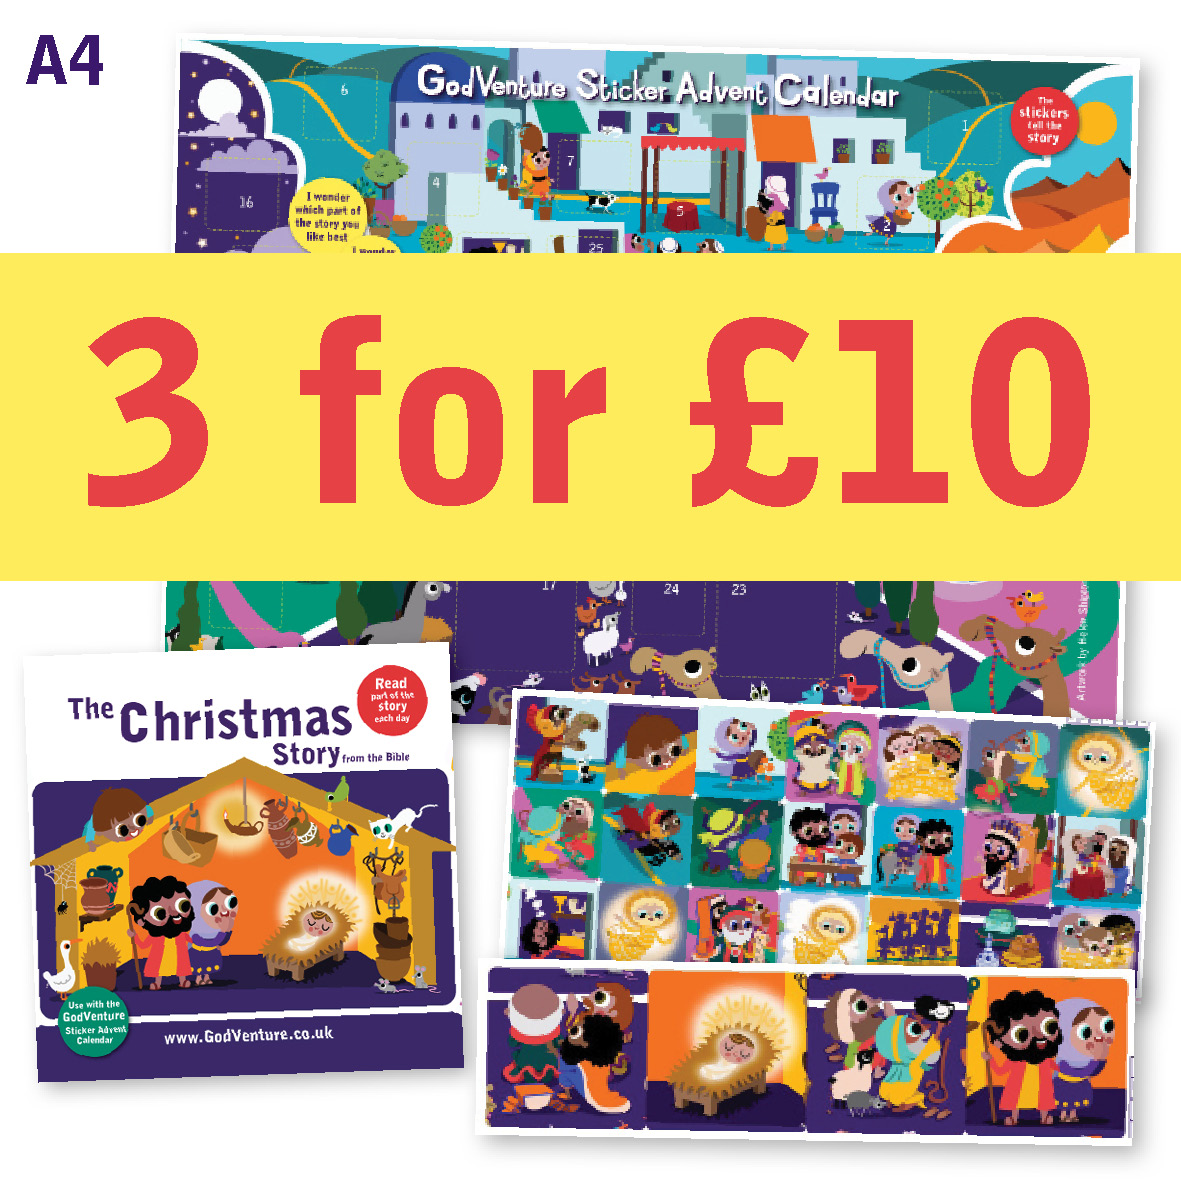 Advent Calendar Sticker Bible offer BOGOF